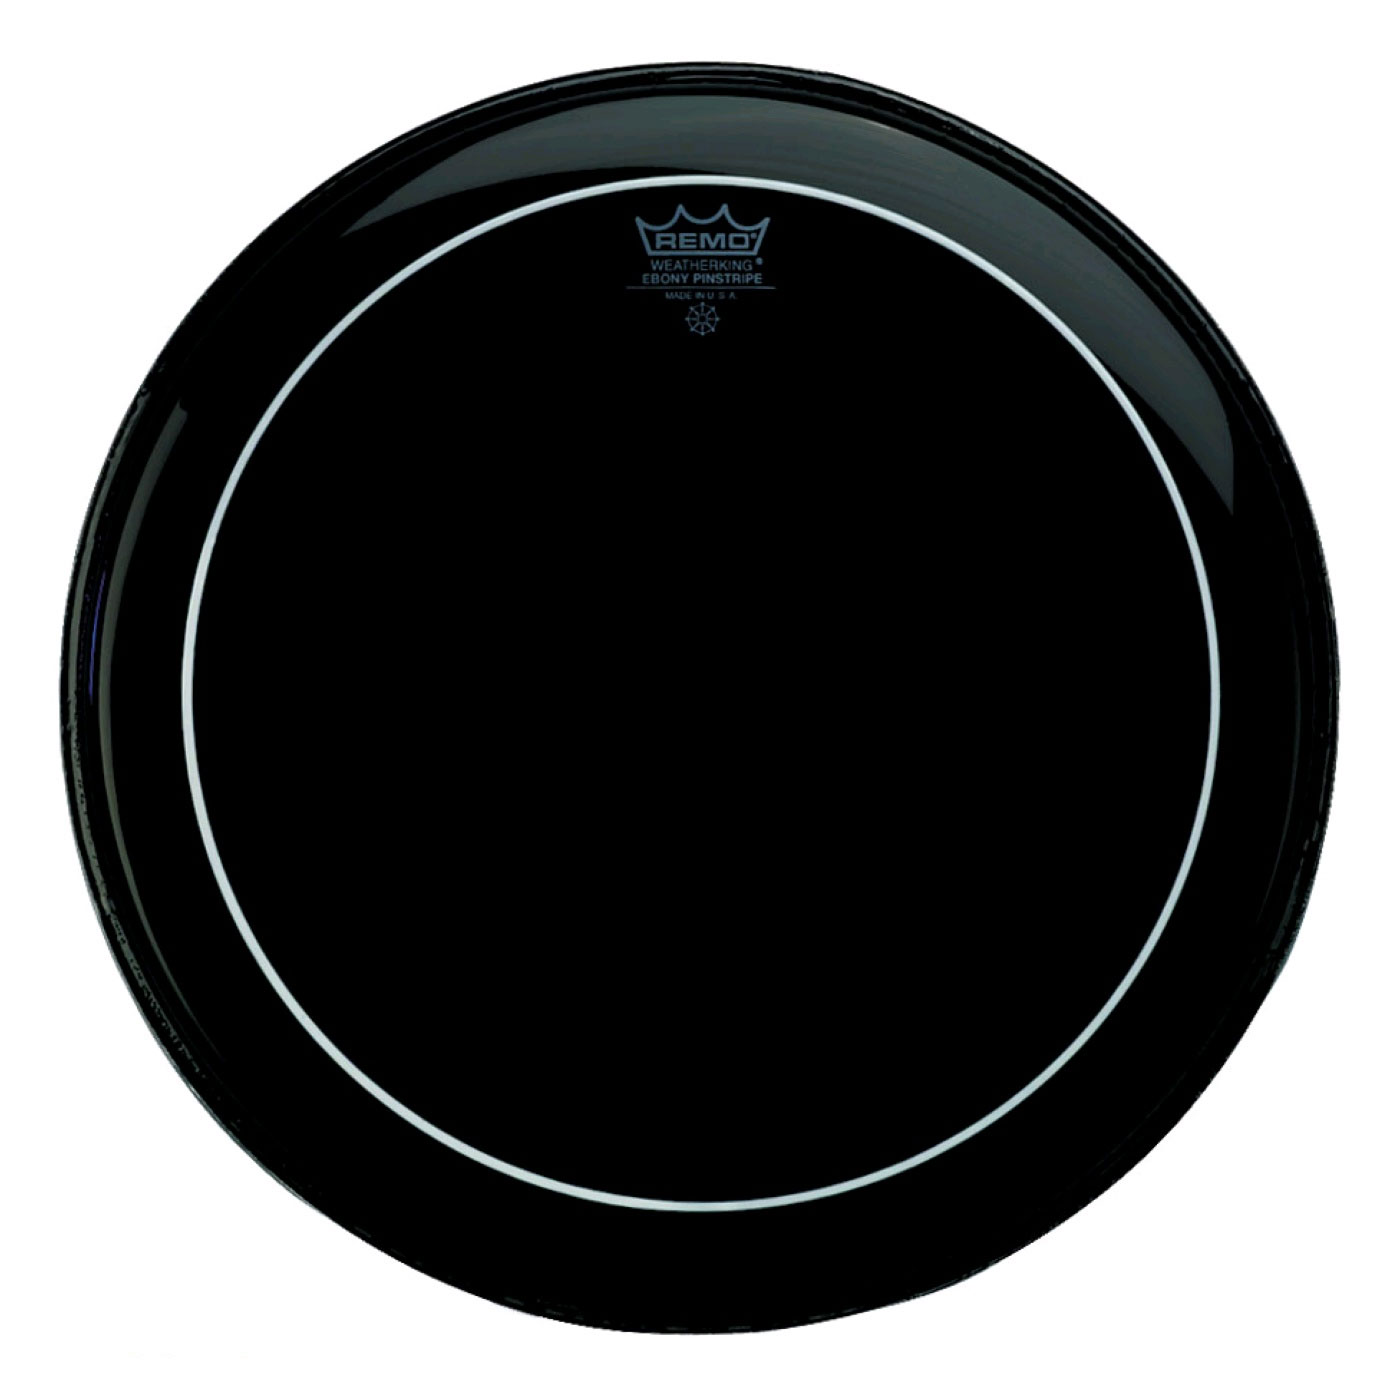 "Remo 30"" Pinstripe Ebony Concert Bass Drum Head"